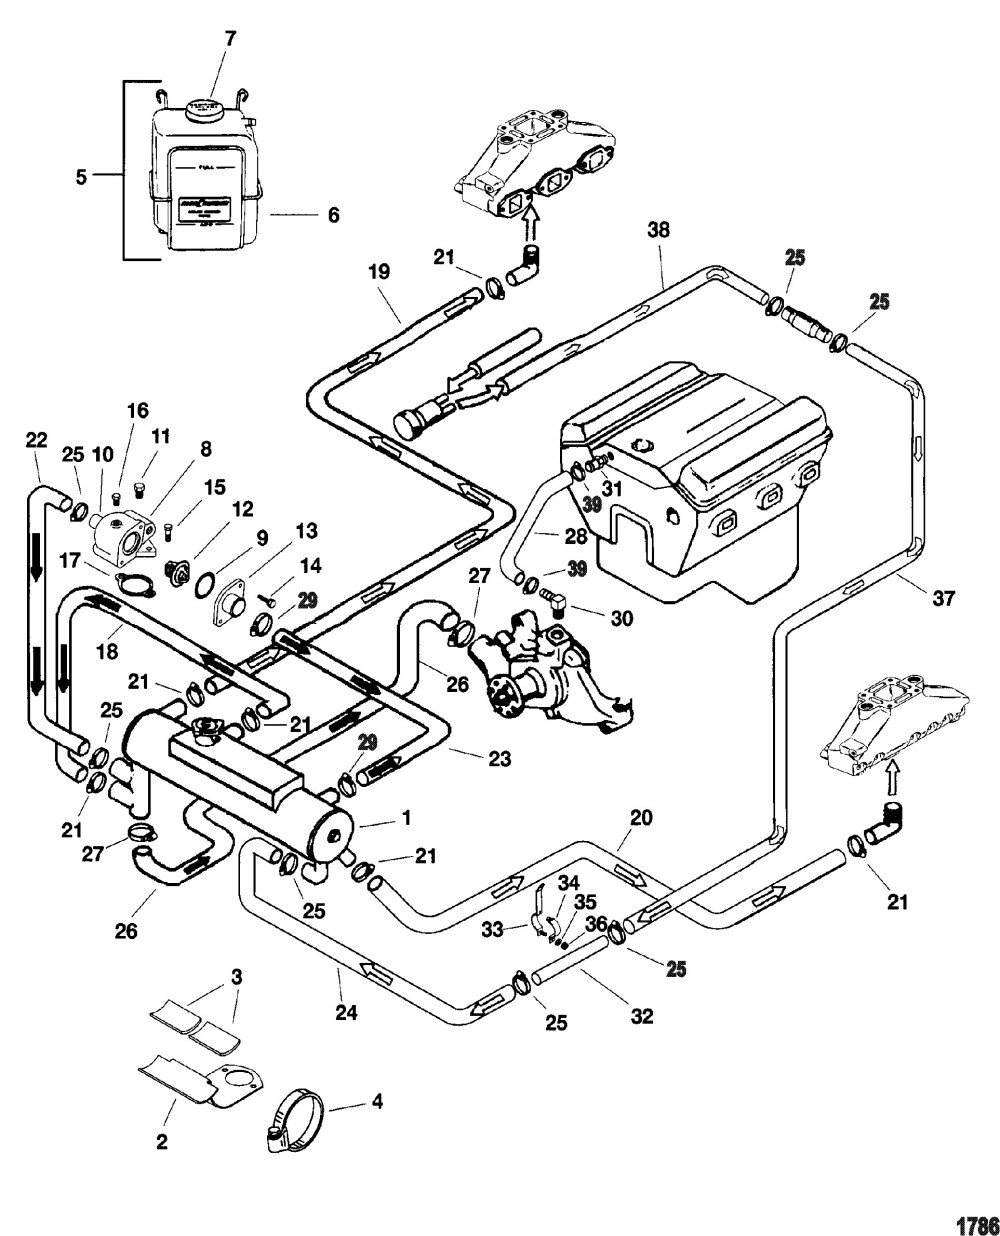 medium resolution of wrg 8908 1990 bmw 325i wiring diagram 1993 bmw 325i engine diagram auto wiring diagrams